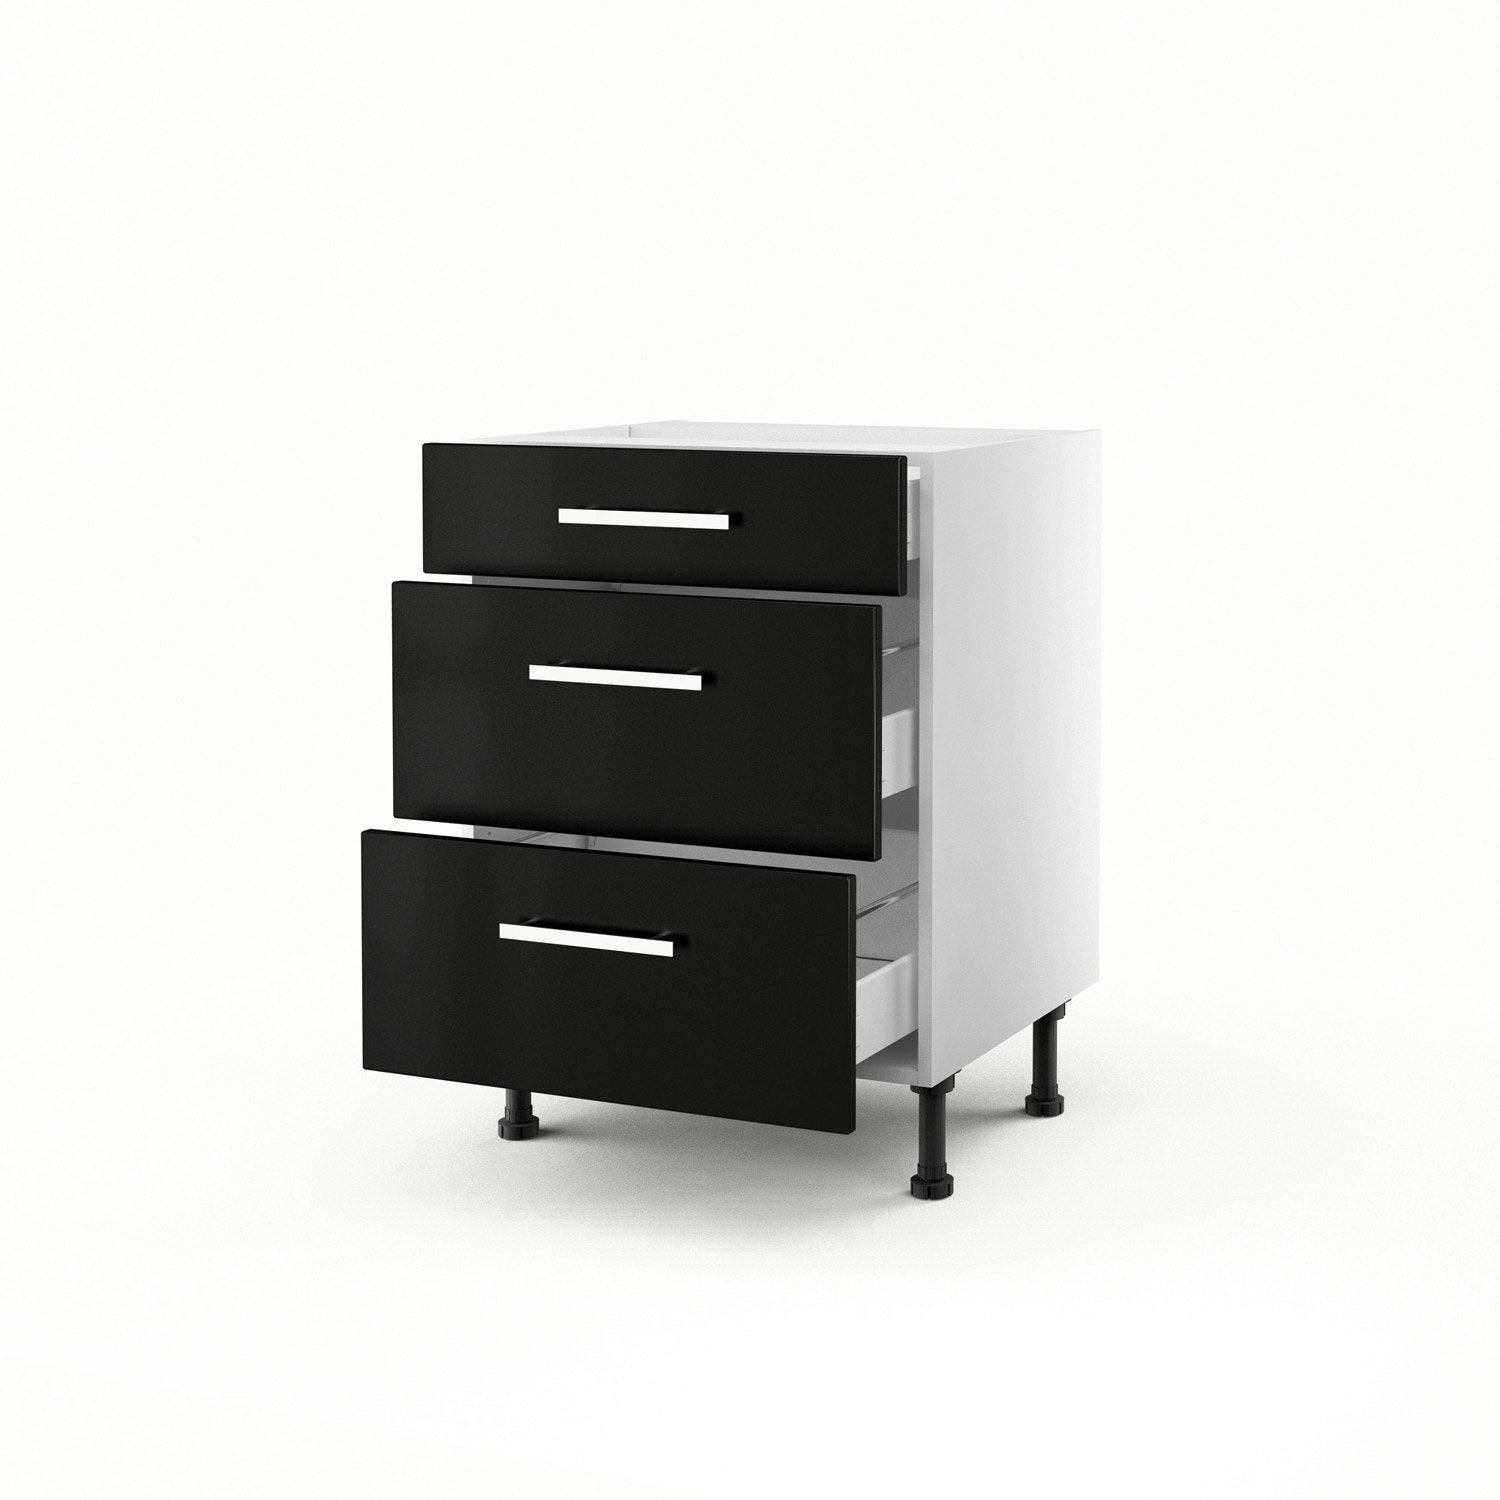 meuble de cuisine bas noir 3 tiroirs d lice x x cm leroy merlin. Black Bedroom Furniture Sets. Home Design Ideas